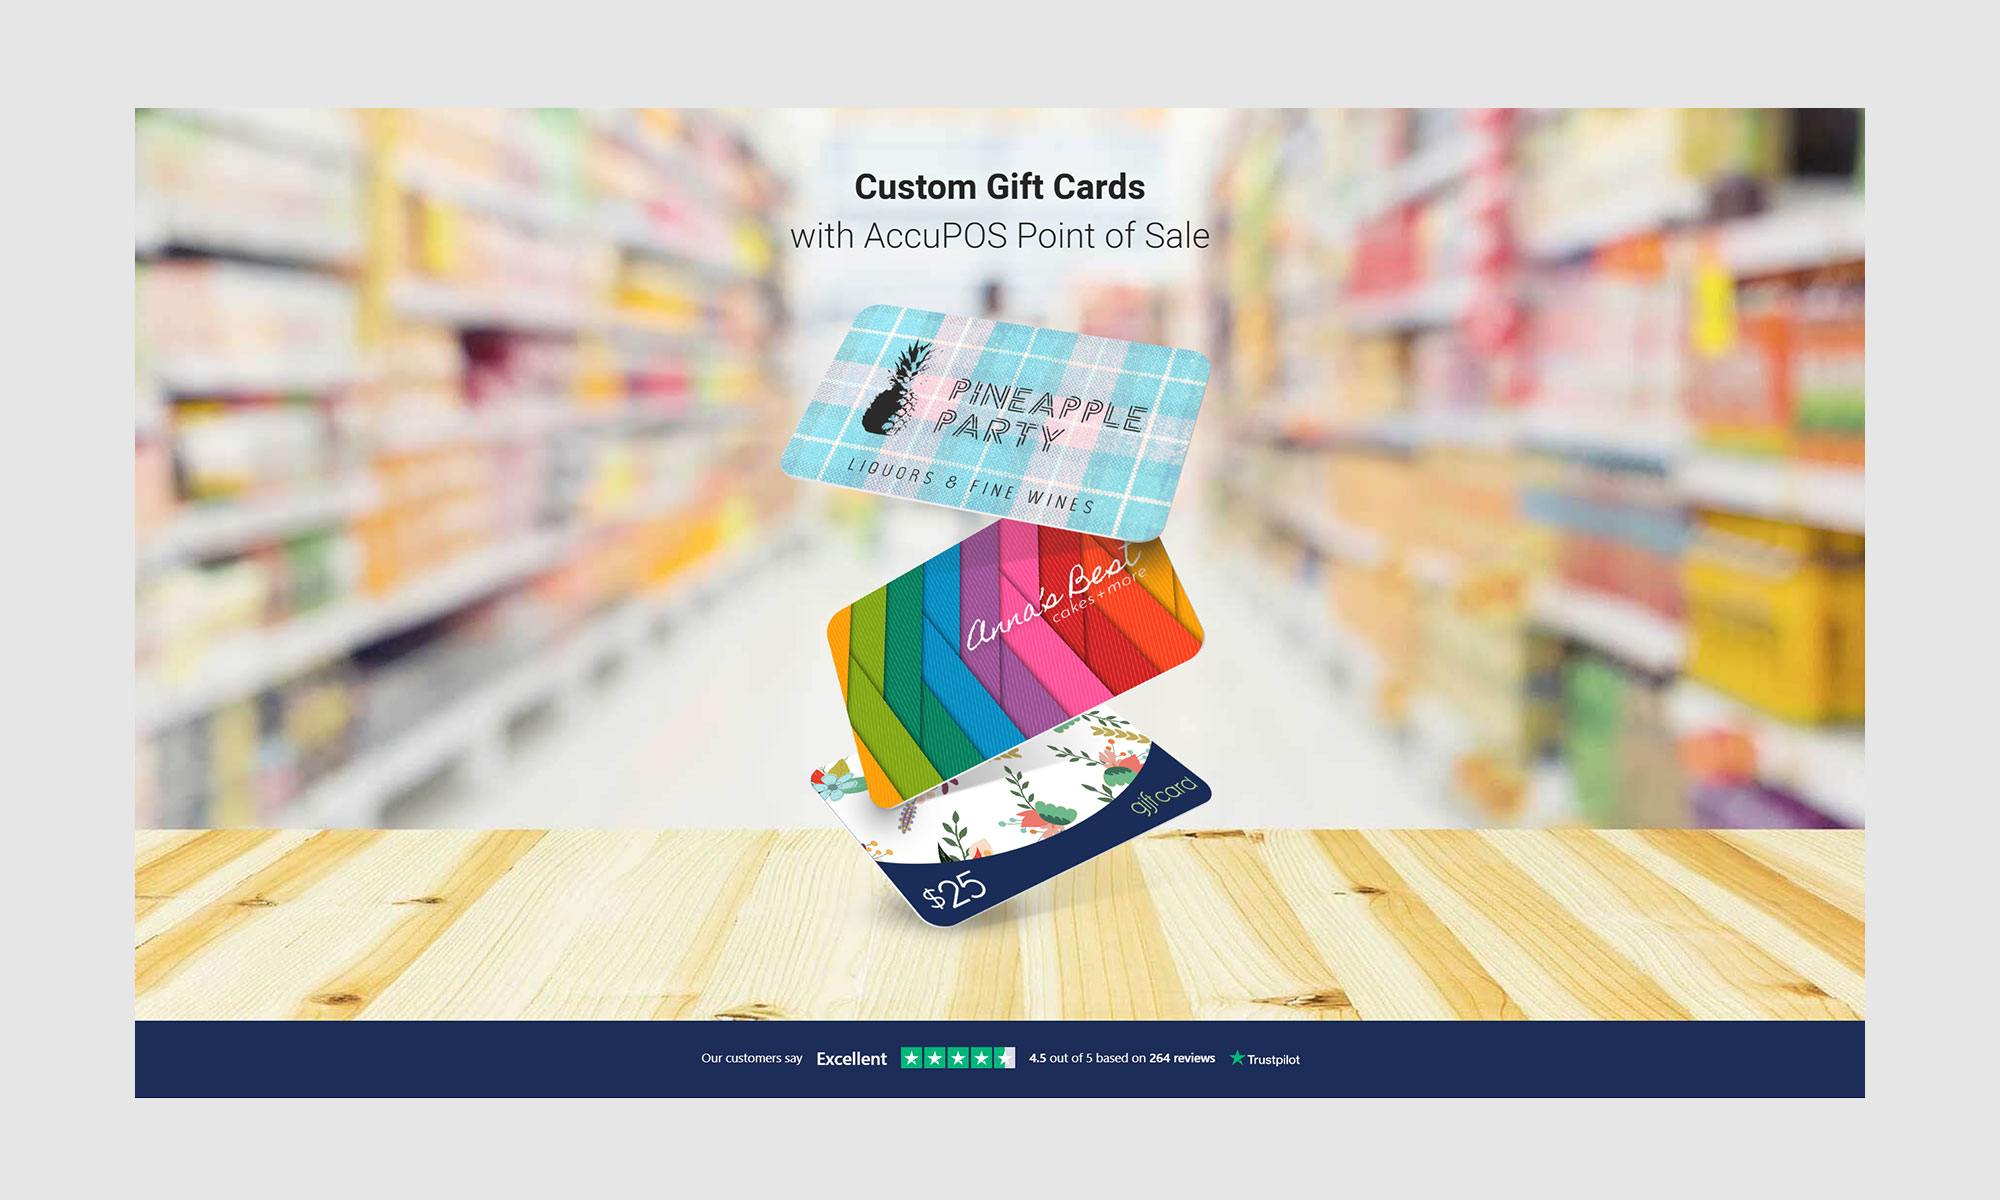 AccuPOS sells custom gift card products for POS customers